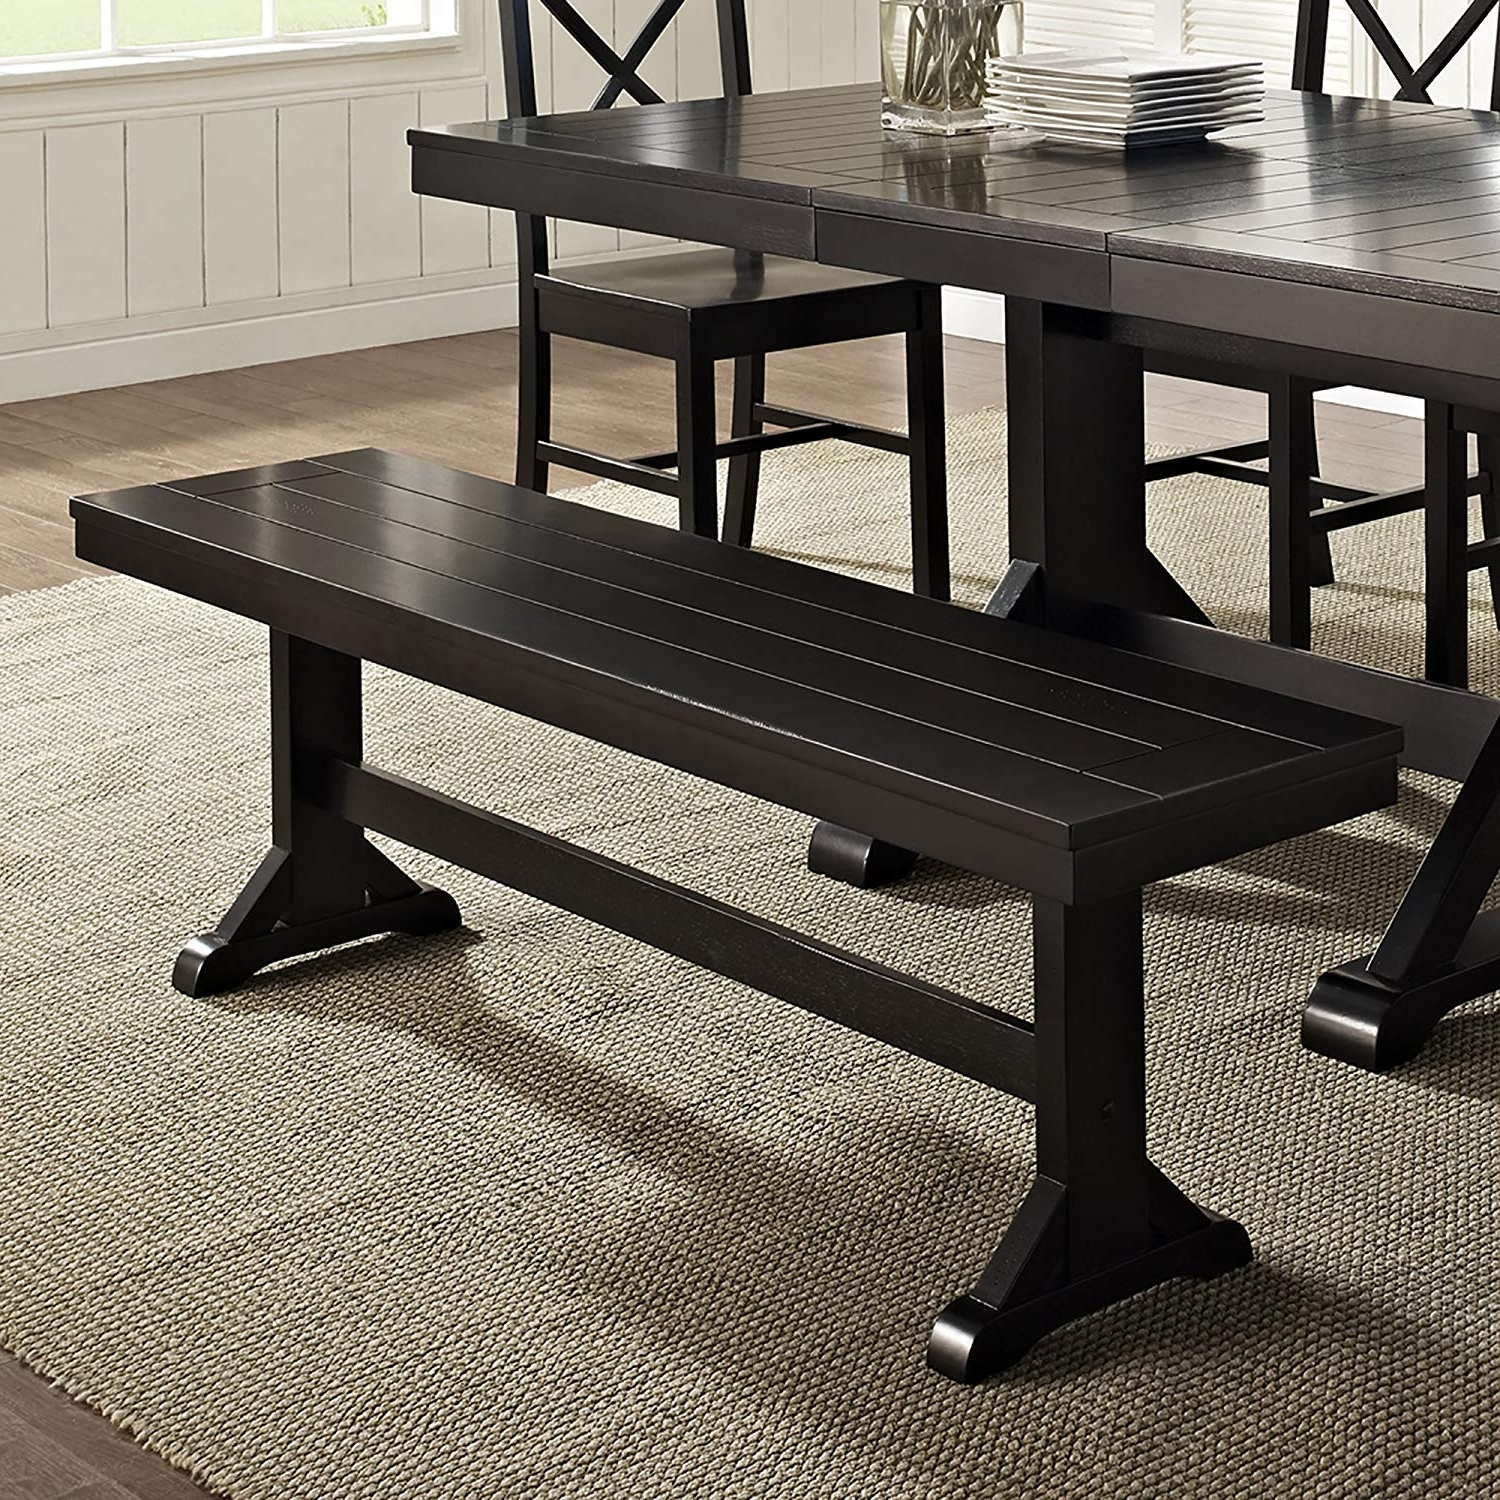 Newest Dining Tables Dark Wood Pertaining To We Furniture Solid Wood Black Dining Bench (View 21 of 25)